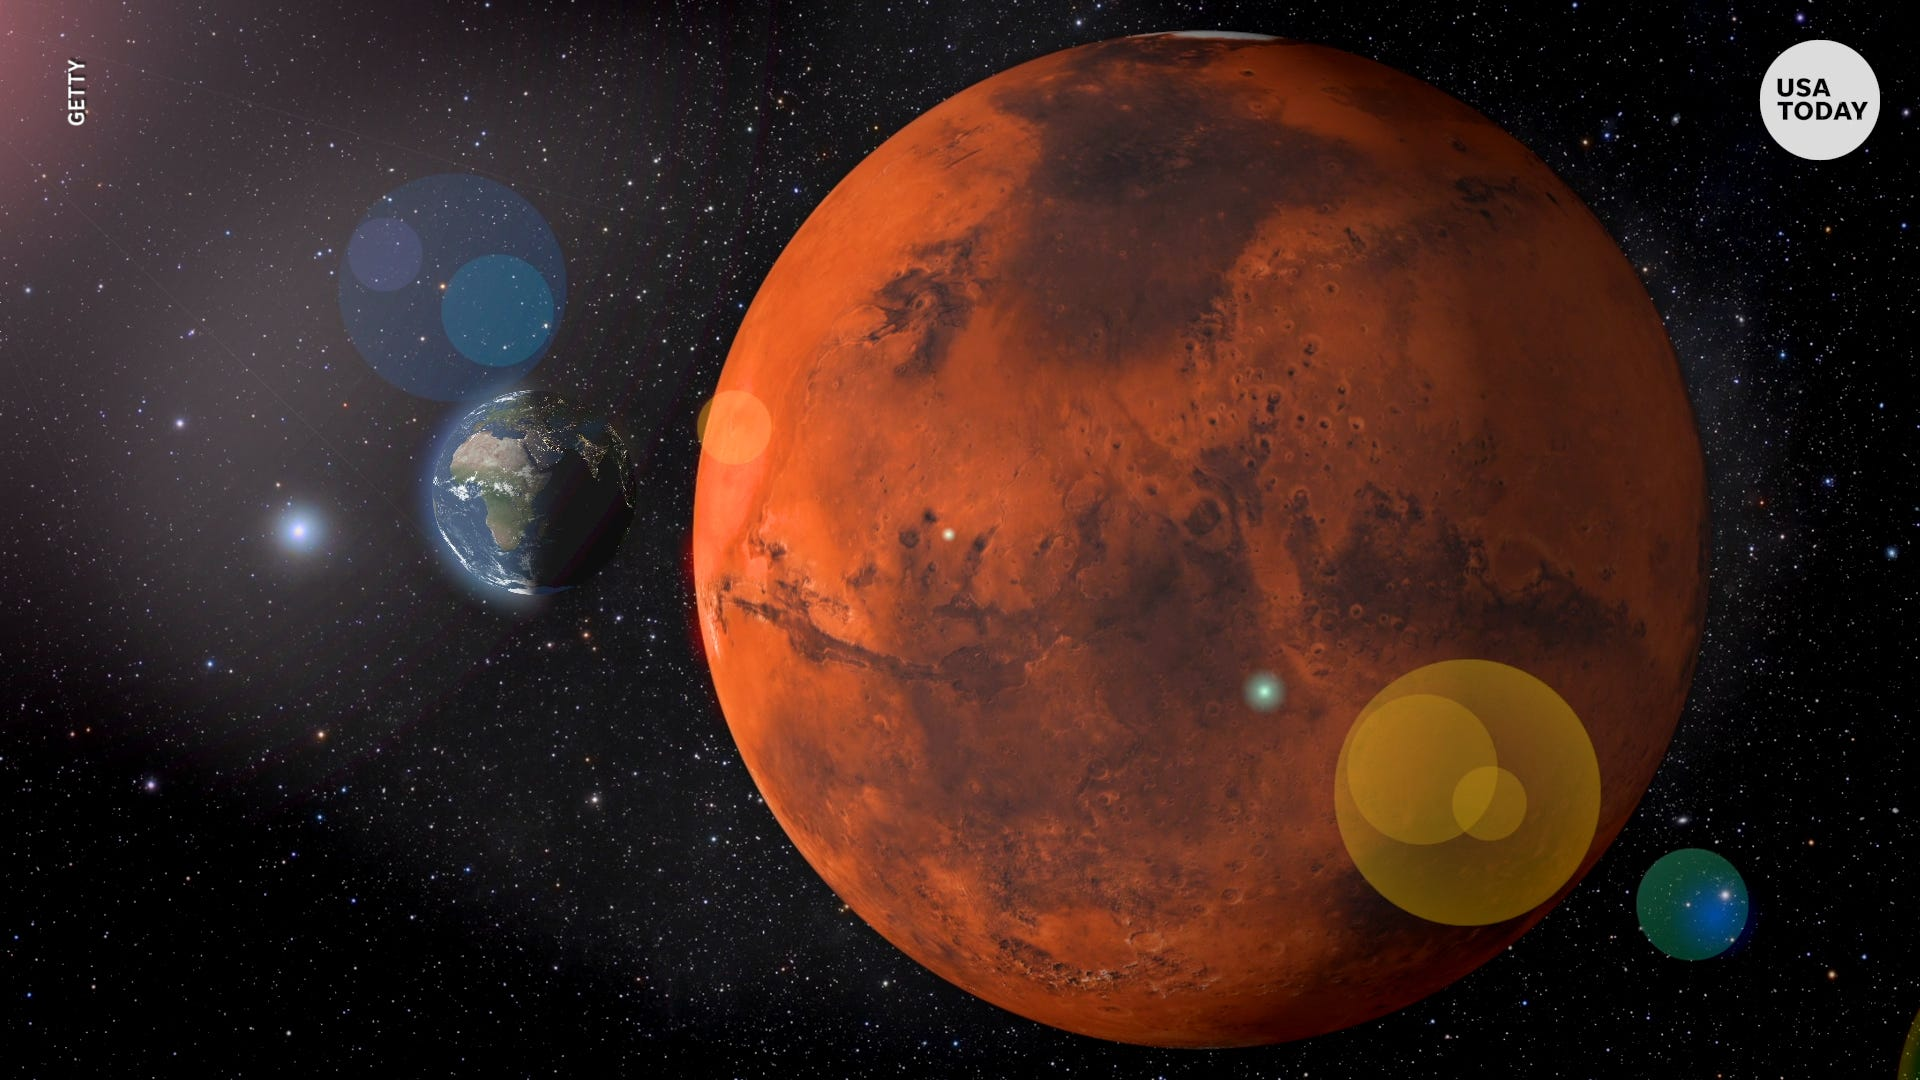 Mars will be making its closest orbit to Earth on Tuesday, catch it or wait until 2035